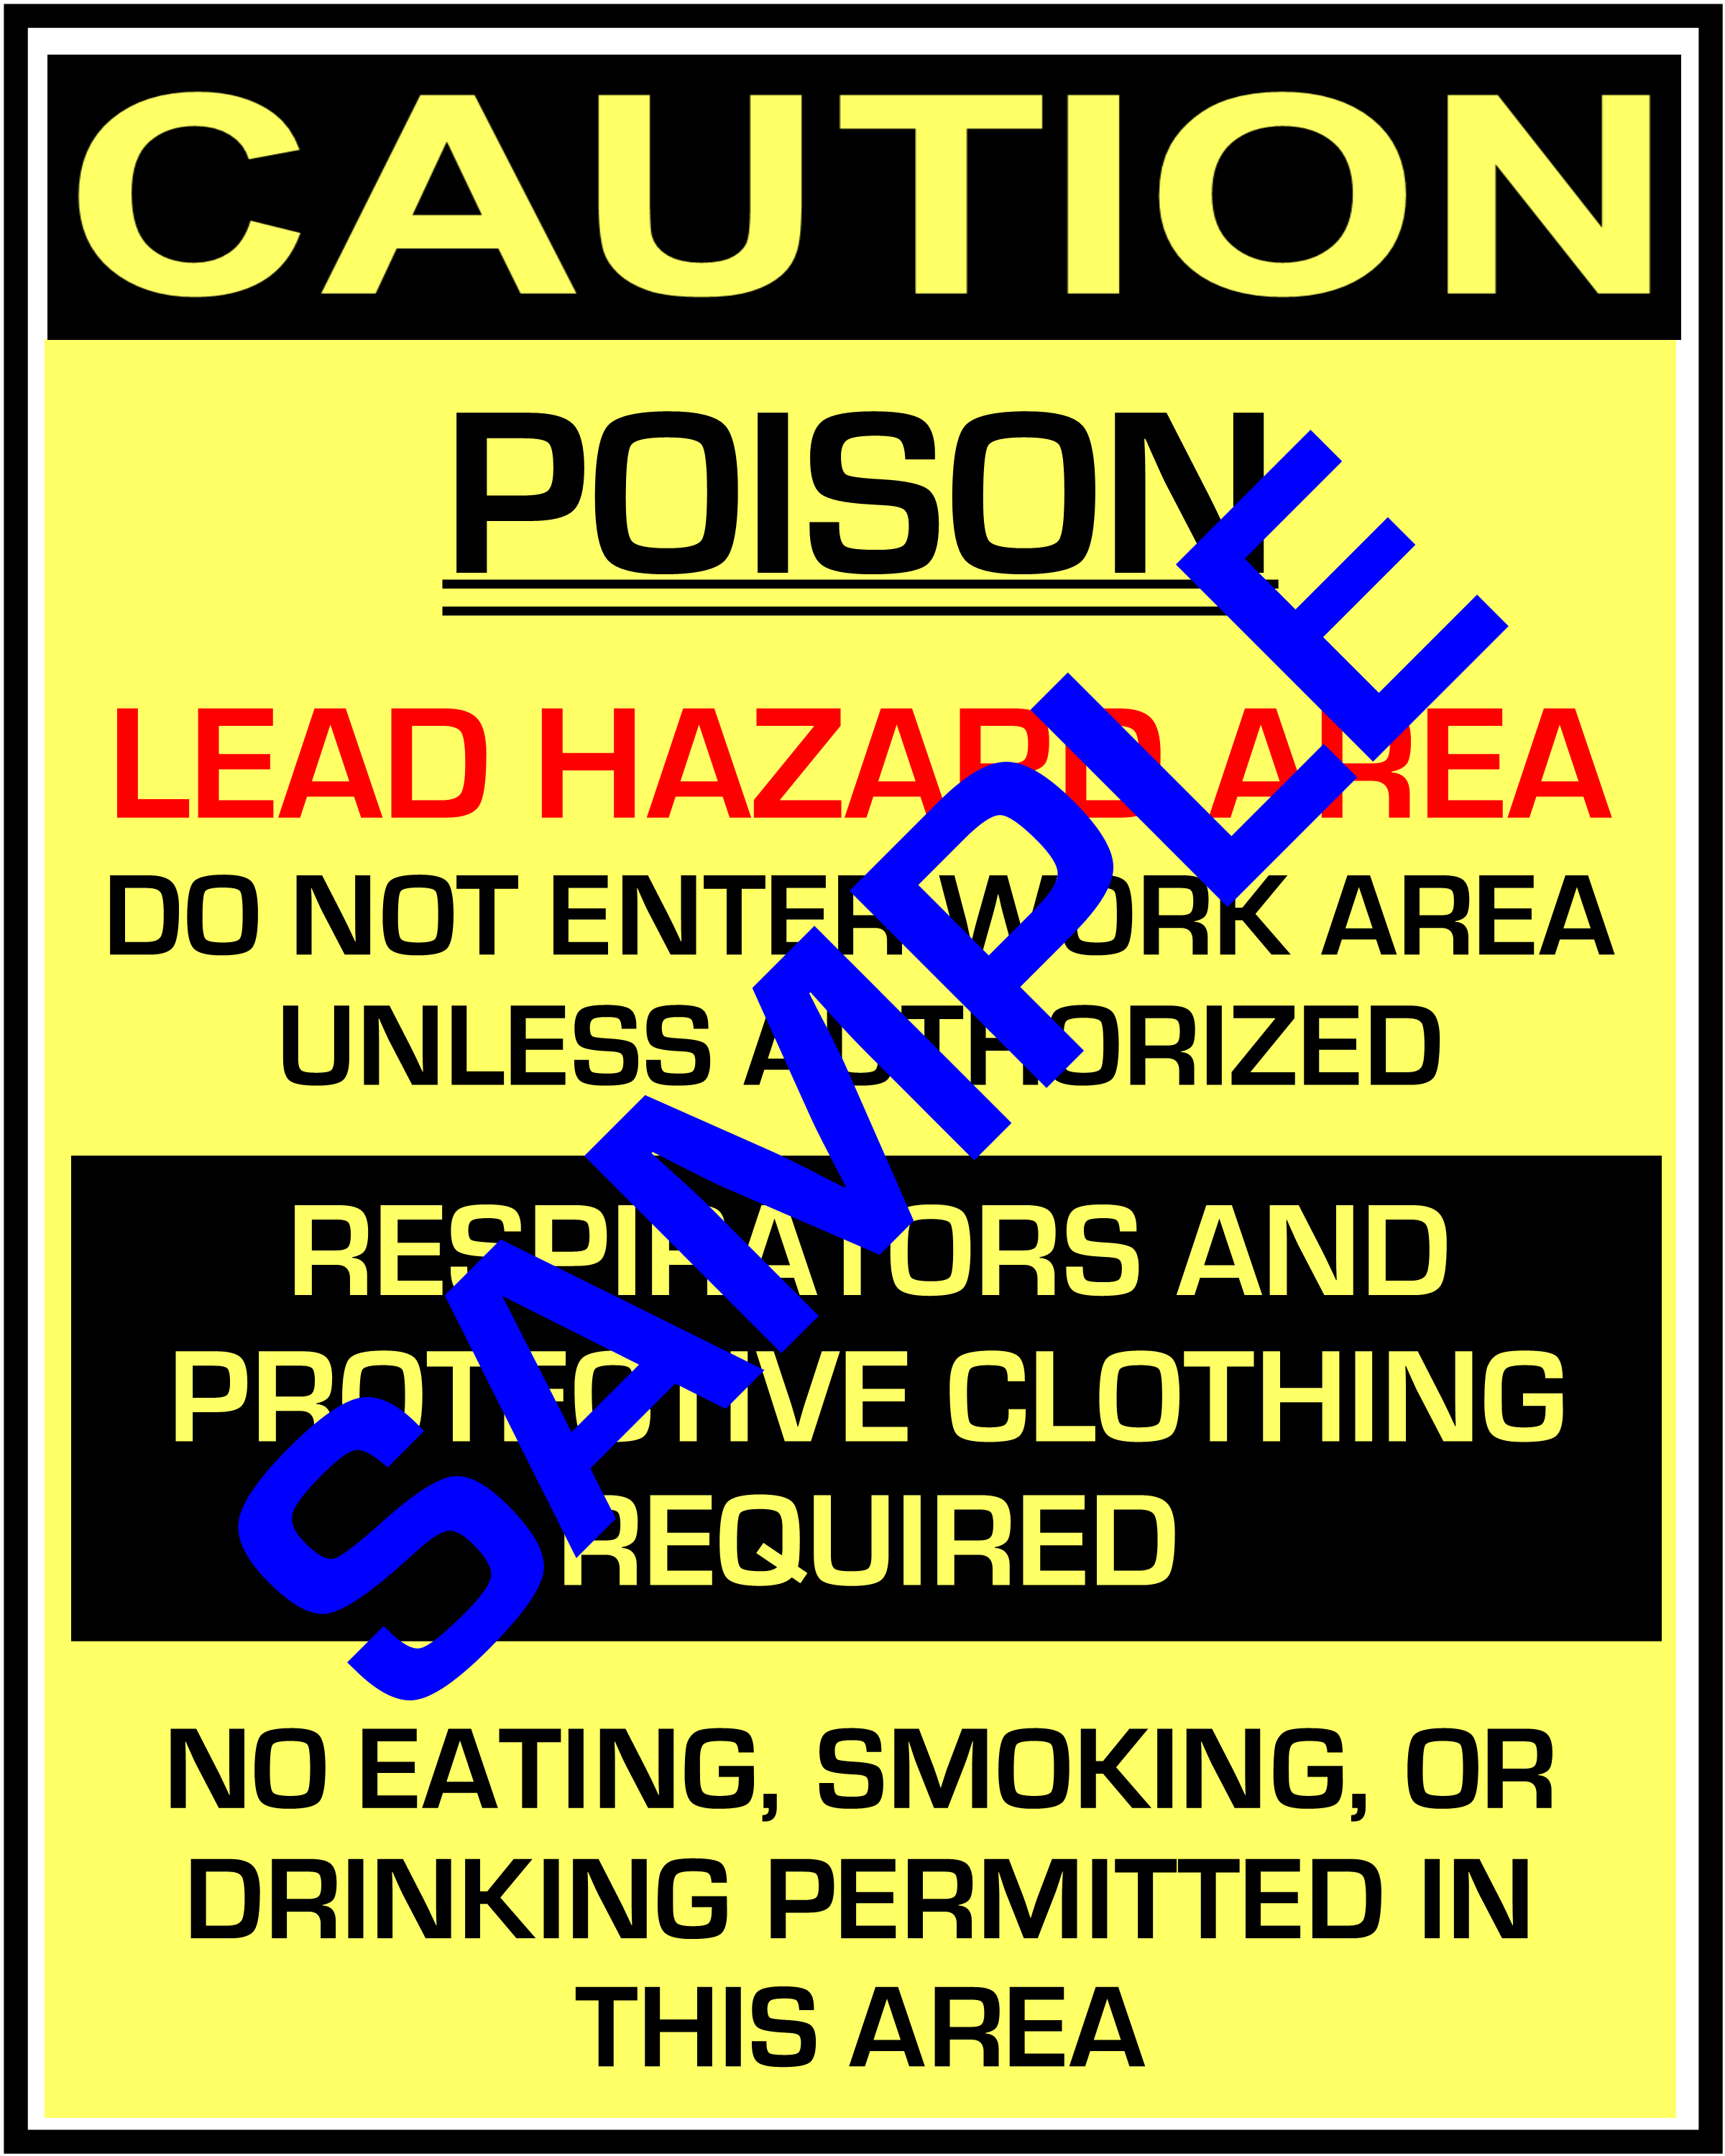 Rrp job site sign lead paint hazard symbols 10 languages caution poison lead hazard warning rrp sign in 10 languages downloadable product biocorpaavc Image collections